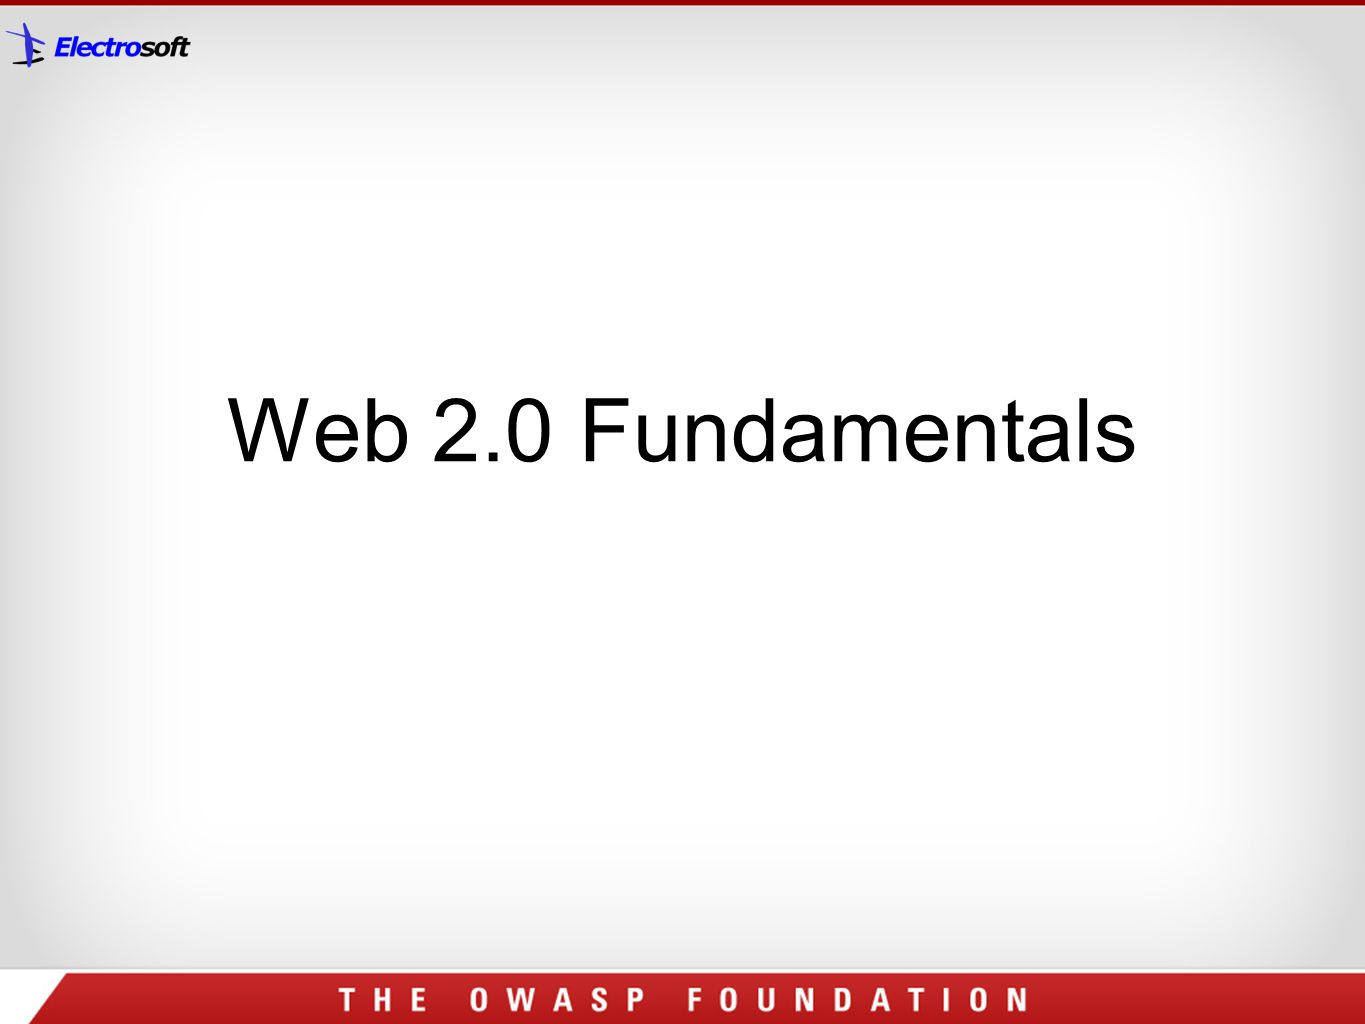 Web 2.0 Fundamentals